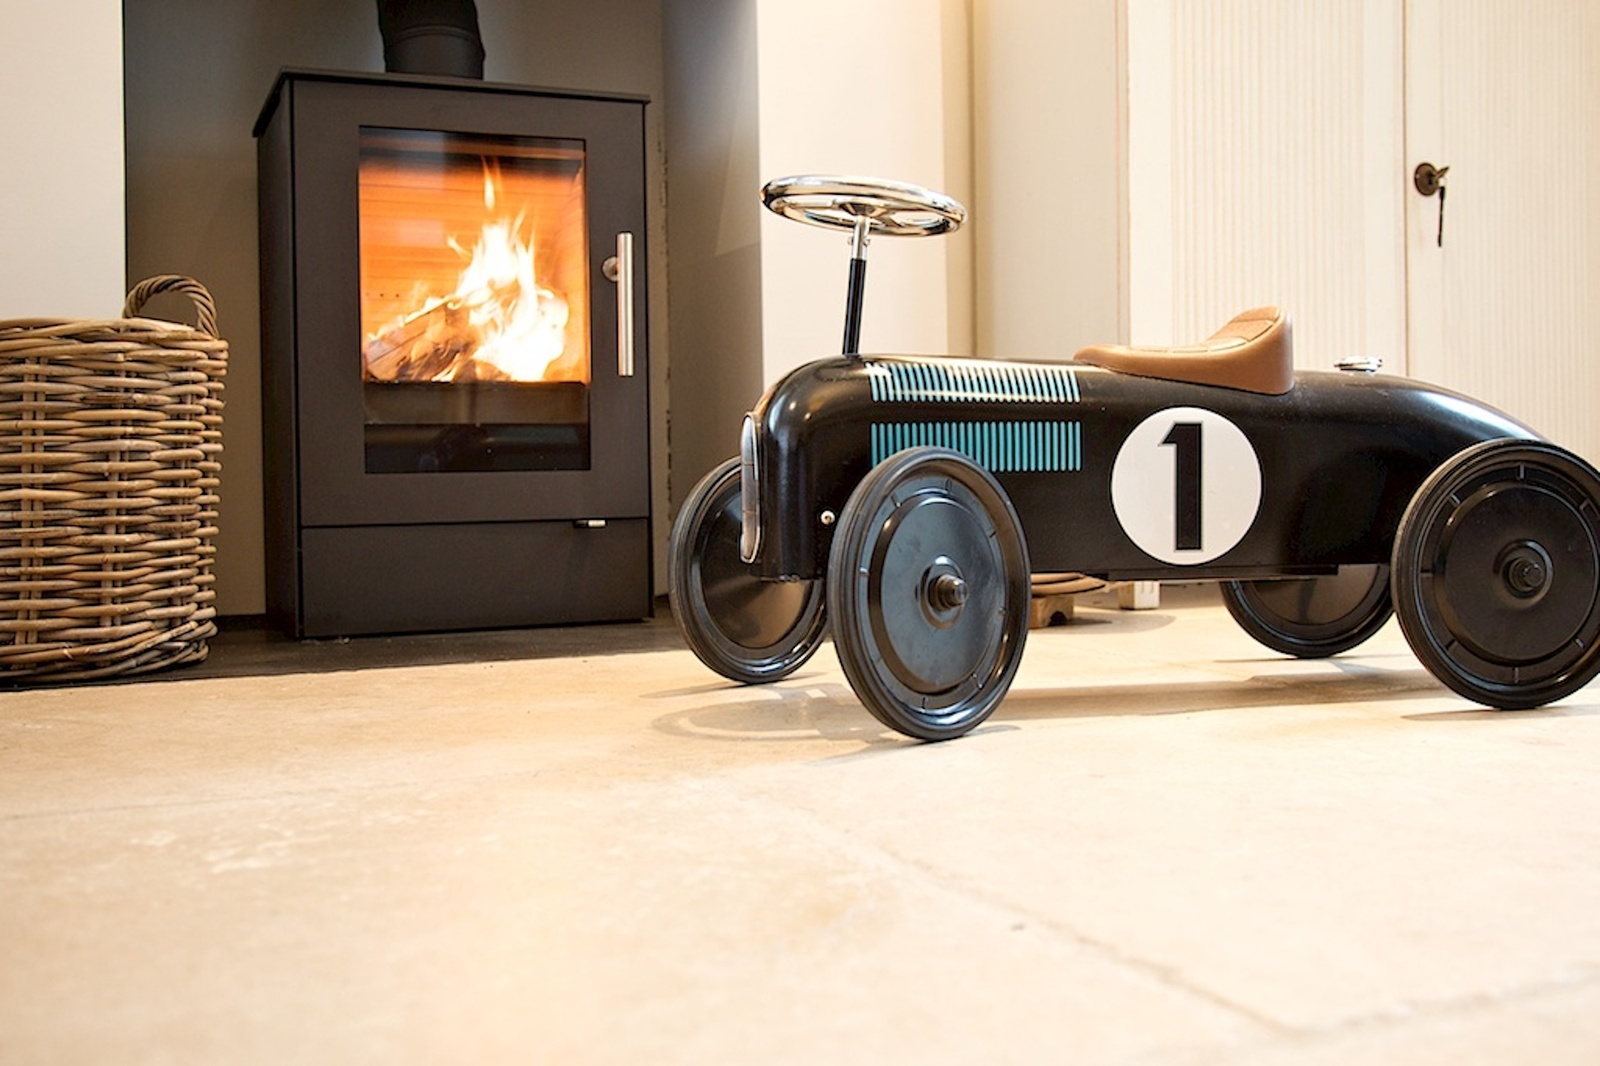 Rais Q-Tee 65 in The Old Vicarage Kitchen